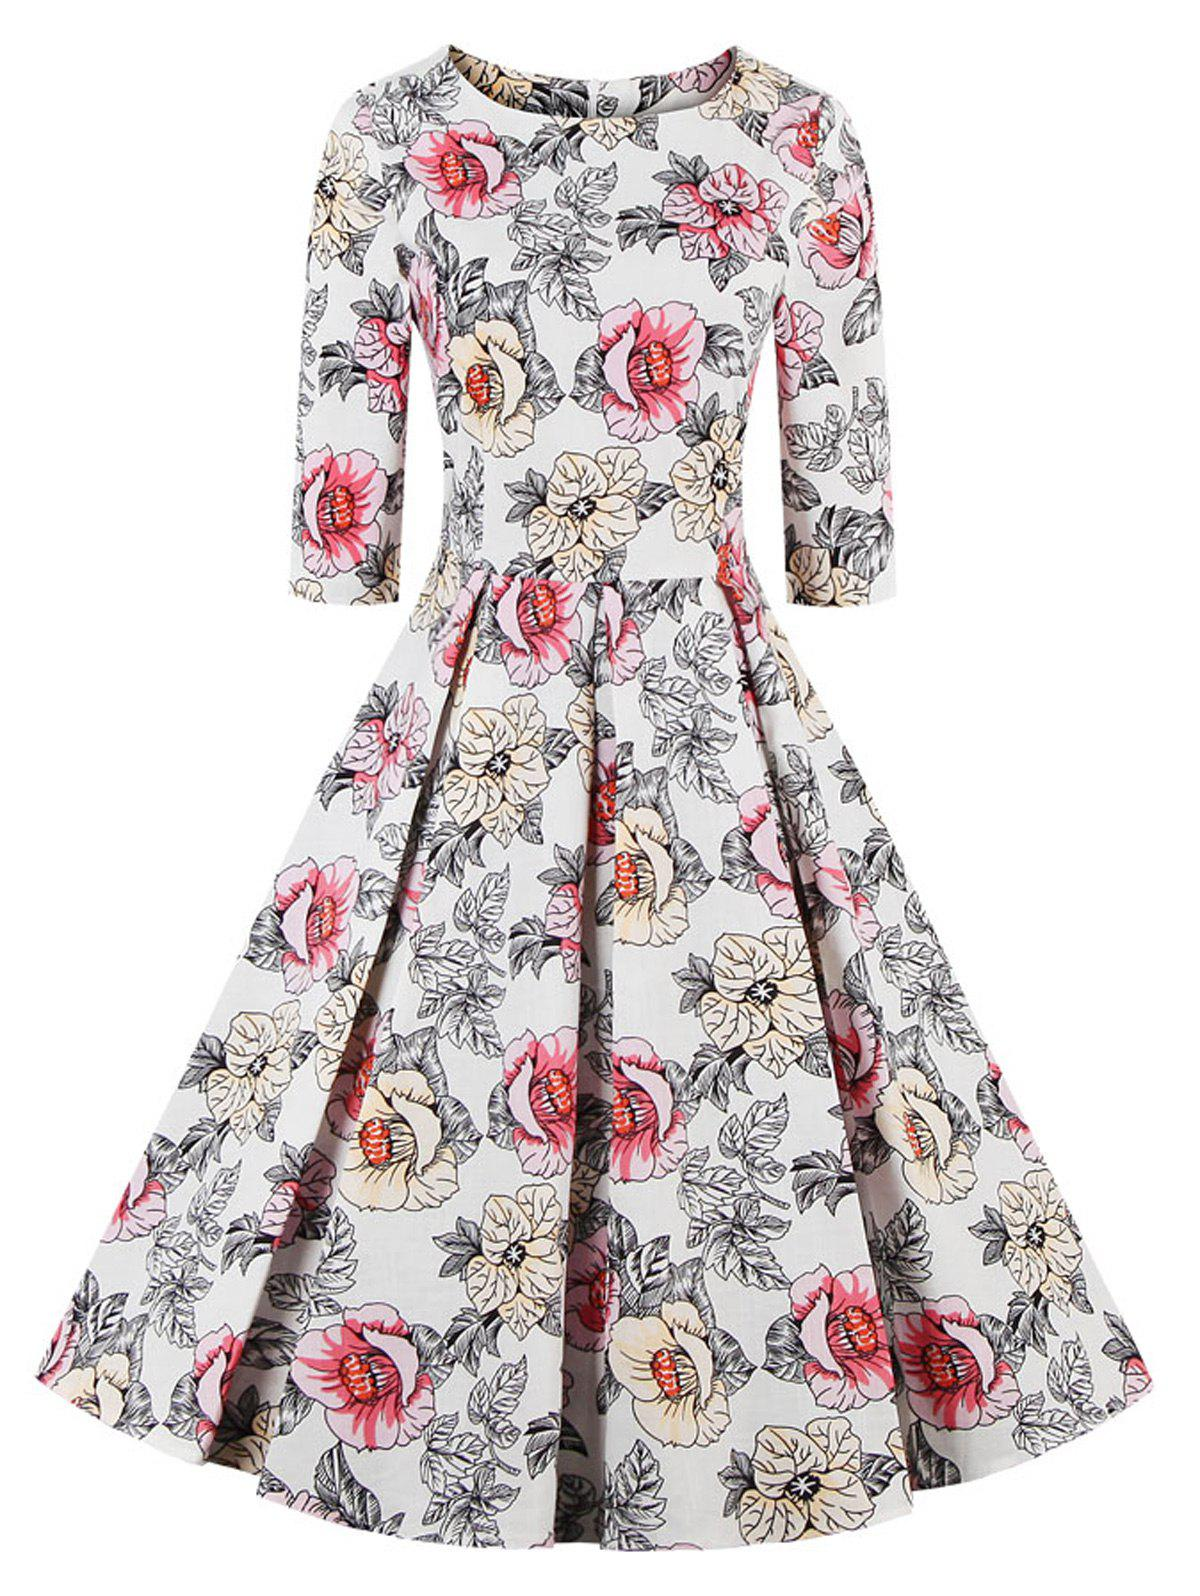 Floral Fit and Flare Swing Dress - OFF WHITE 4XL